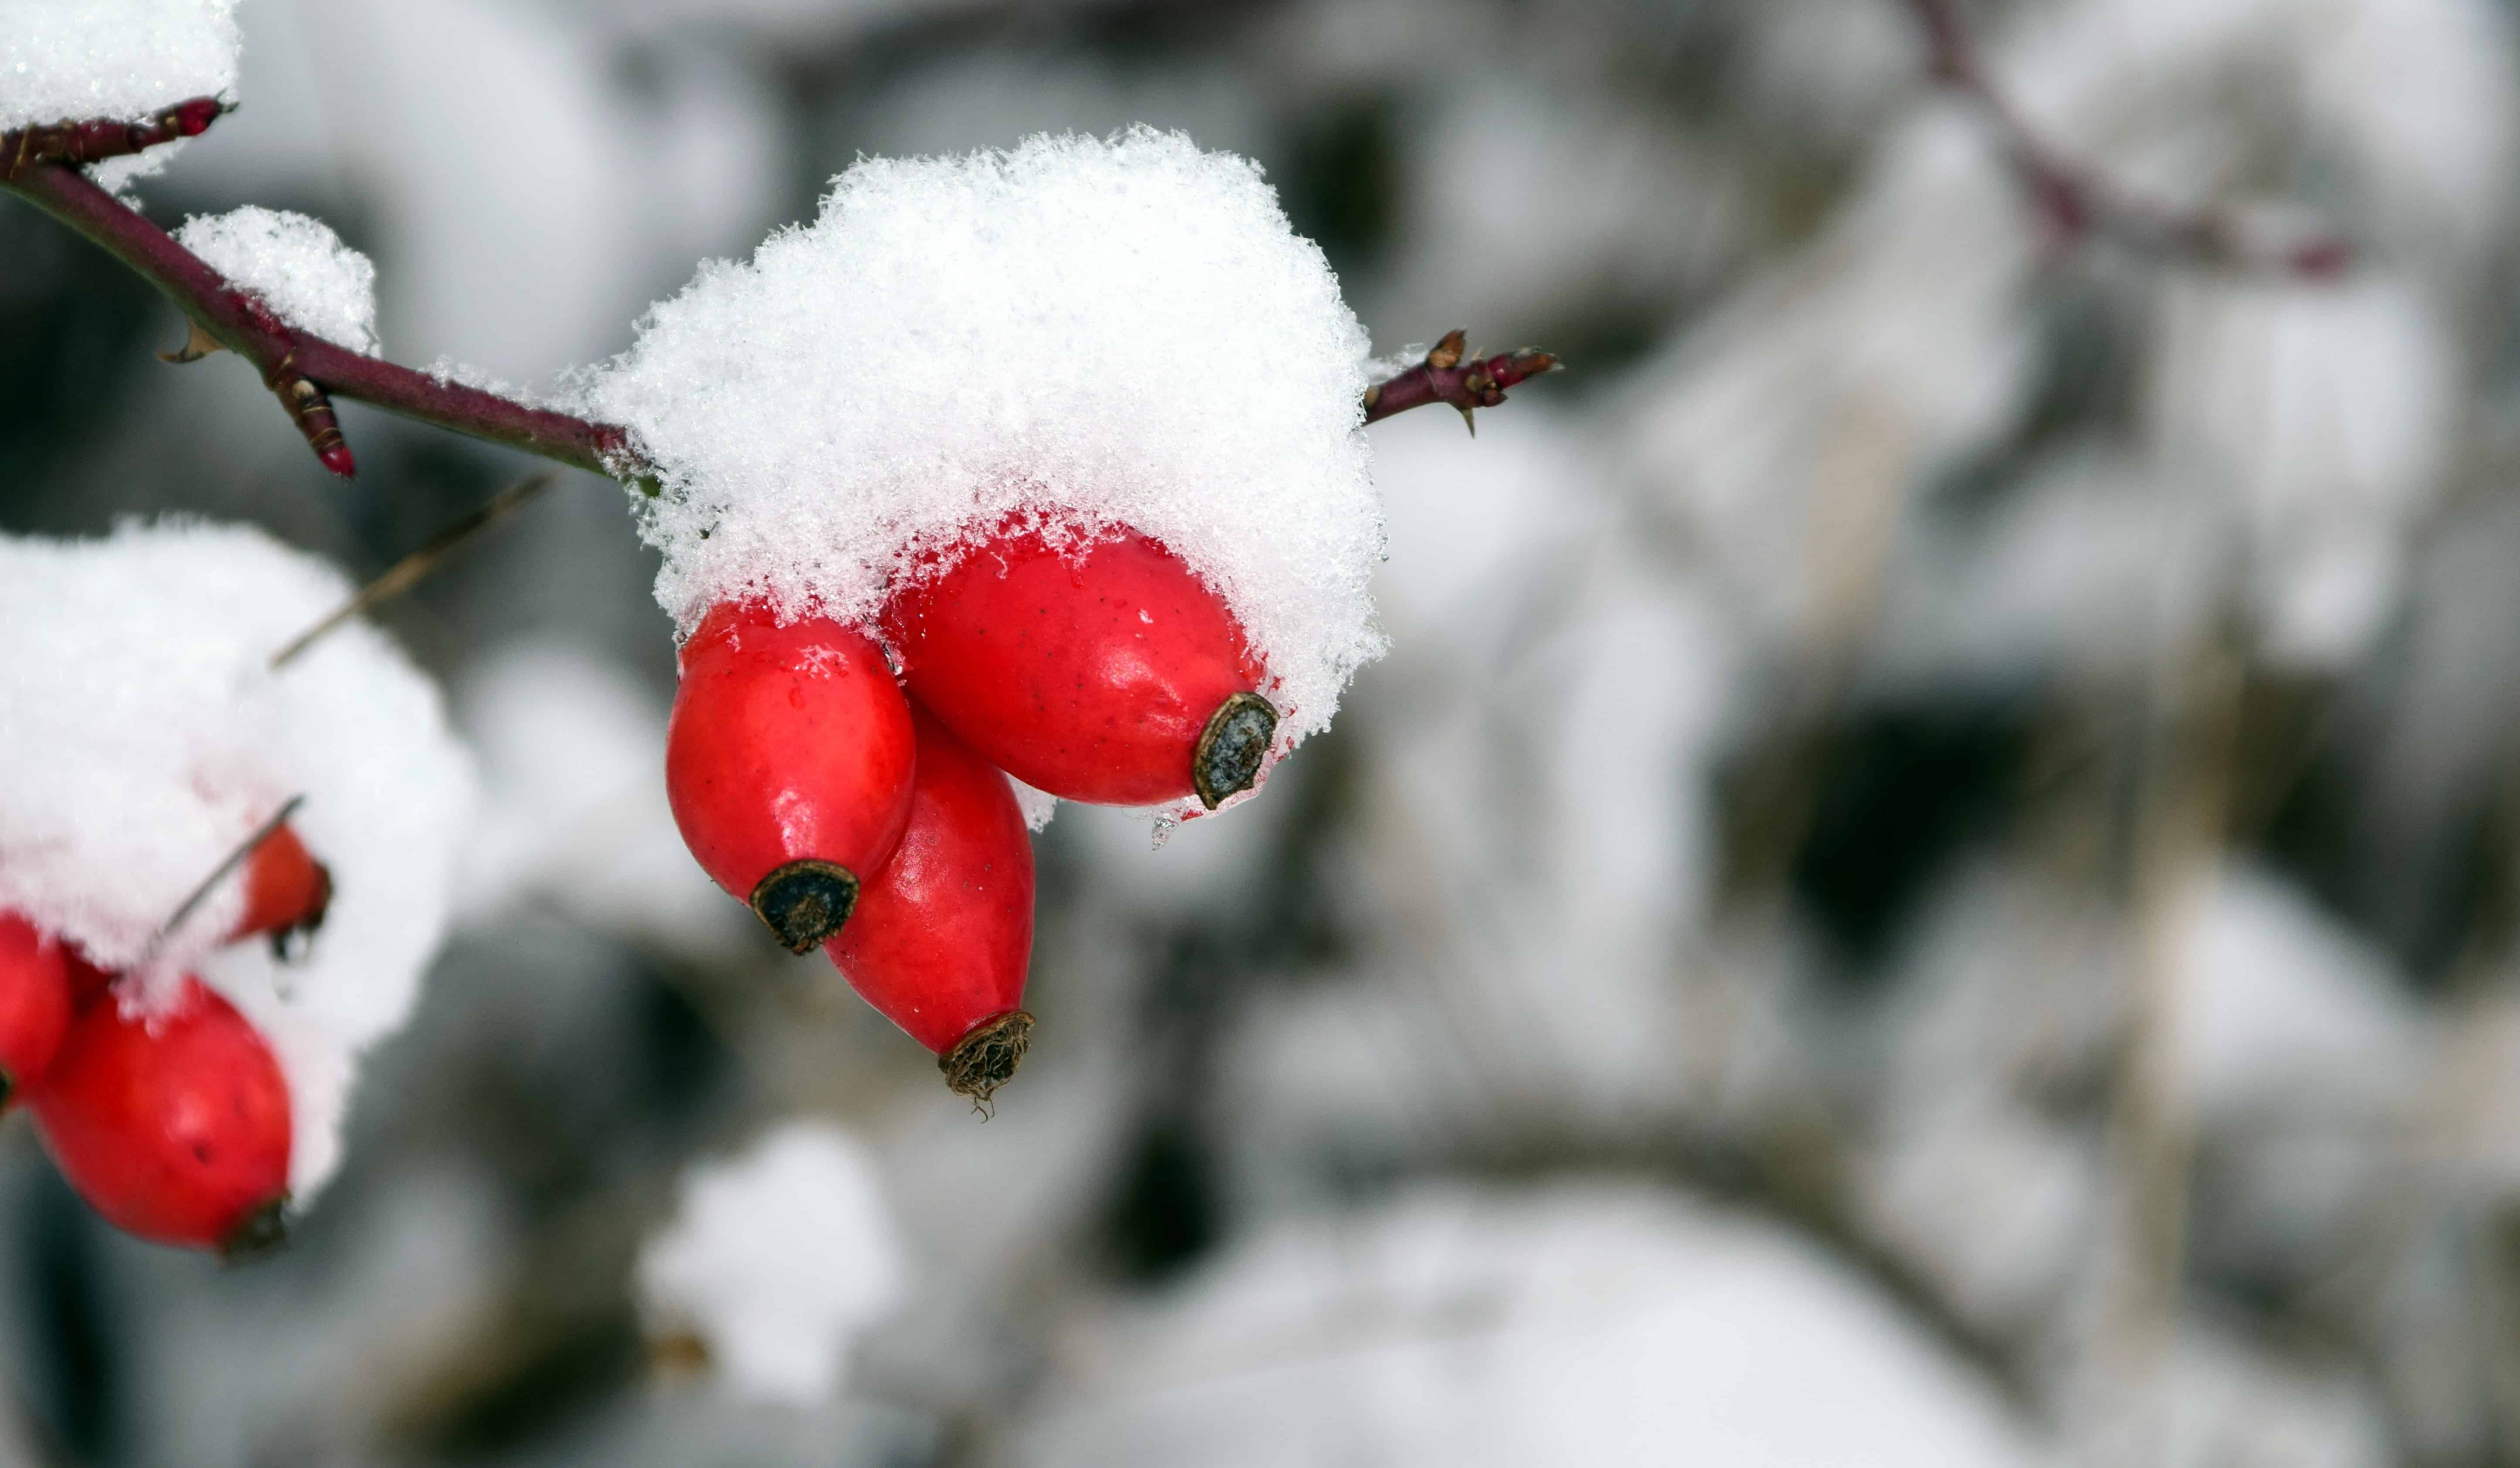 Image Libre Rose Musquee Nature Arbre Hiver Neige Froid